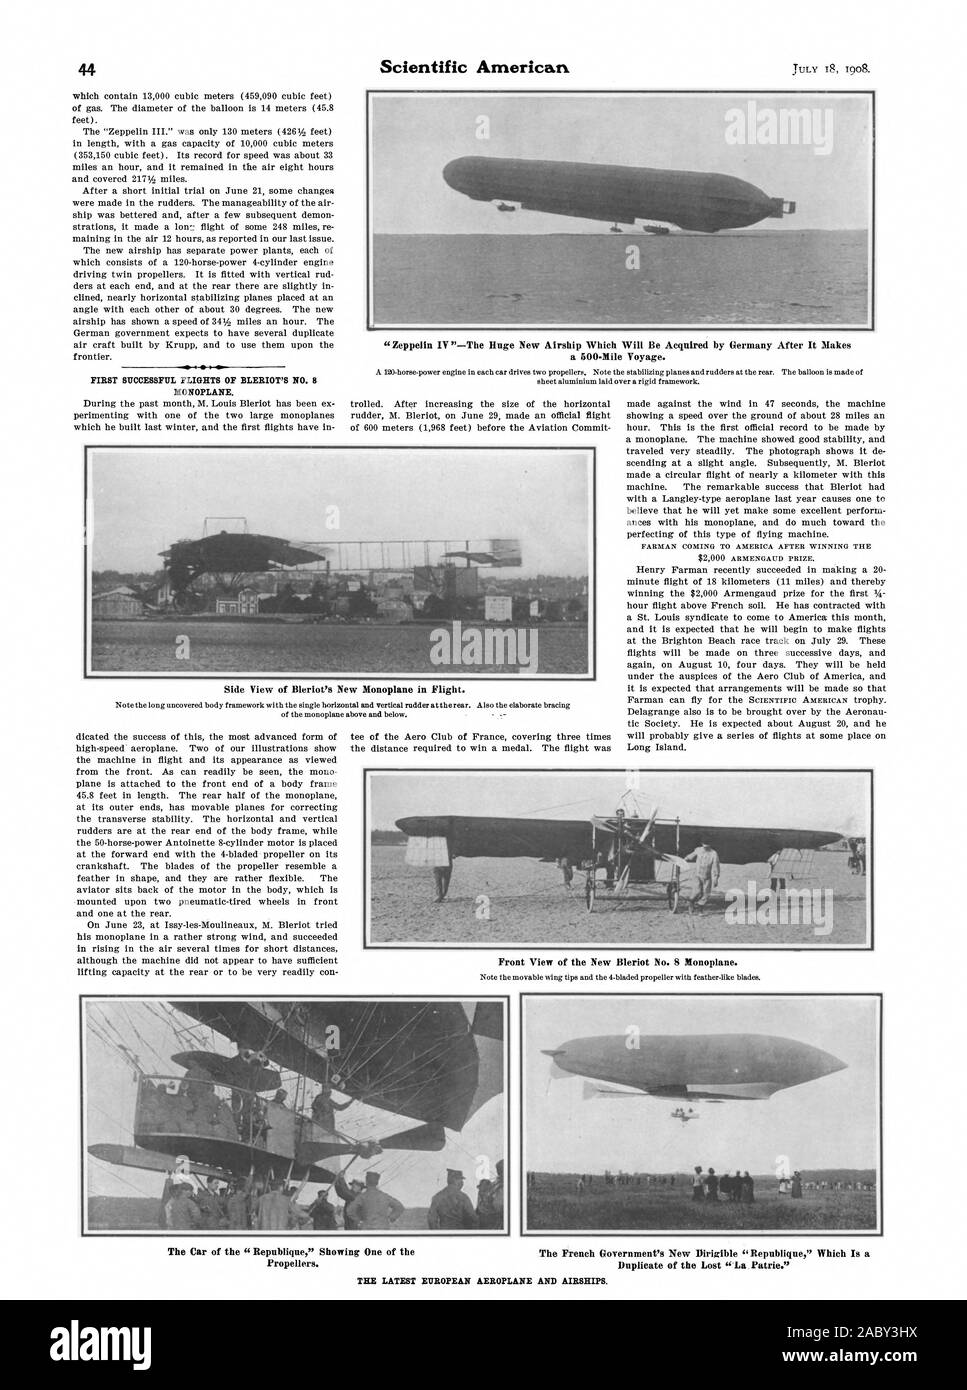 Zeppelin IV '—The Huge New Airship Which Will Be Acquired by Germany After It Makes a 500-Mile Voyage. FIRST SUCCESSFUL FLIGHTS OF BLERIOT'S NO. 8 MONOPLANE. Front View of the New Bleriot No. 8 Monoplane. Side View of Bleriot's New Monoplane in Flight. The Car of the 'Republique' Showing One of the The French Government's New Dirigible 'Republique' Which Is a Propellers. Duplicate of the Lost 'La Patrie.' THE LATEST EUROPEAN AEROPLANE AND AIRSHIPS., scientific american, 1908-07-18 Stock Photo